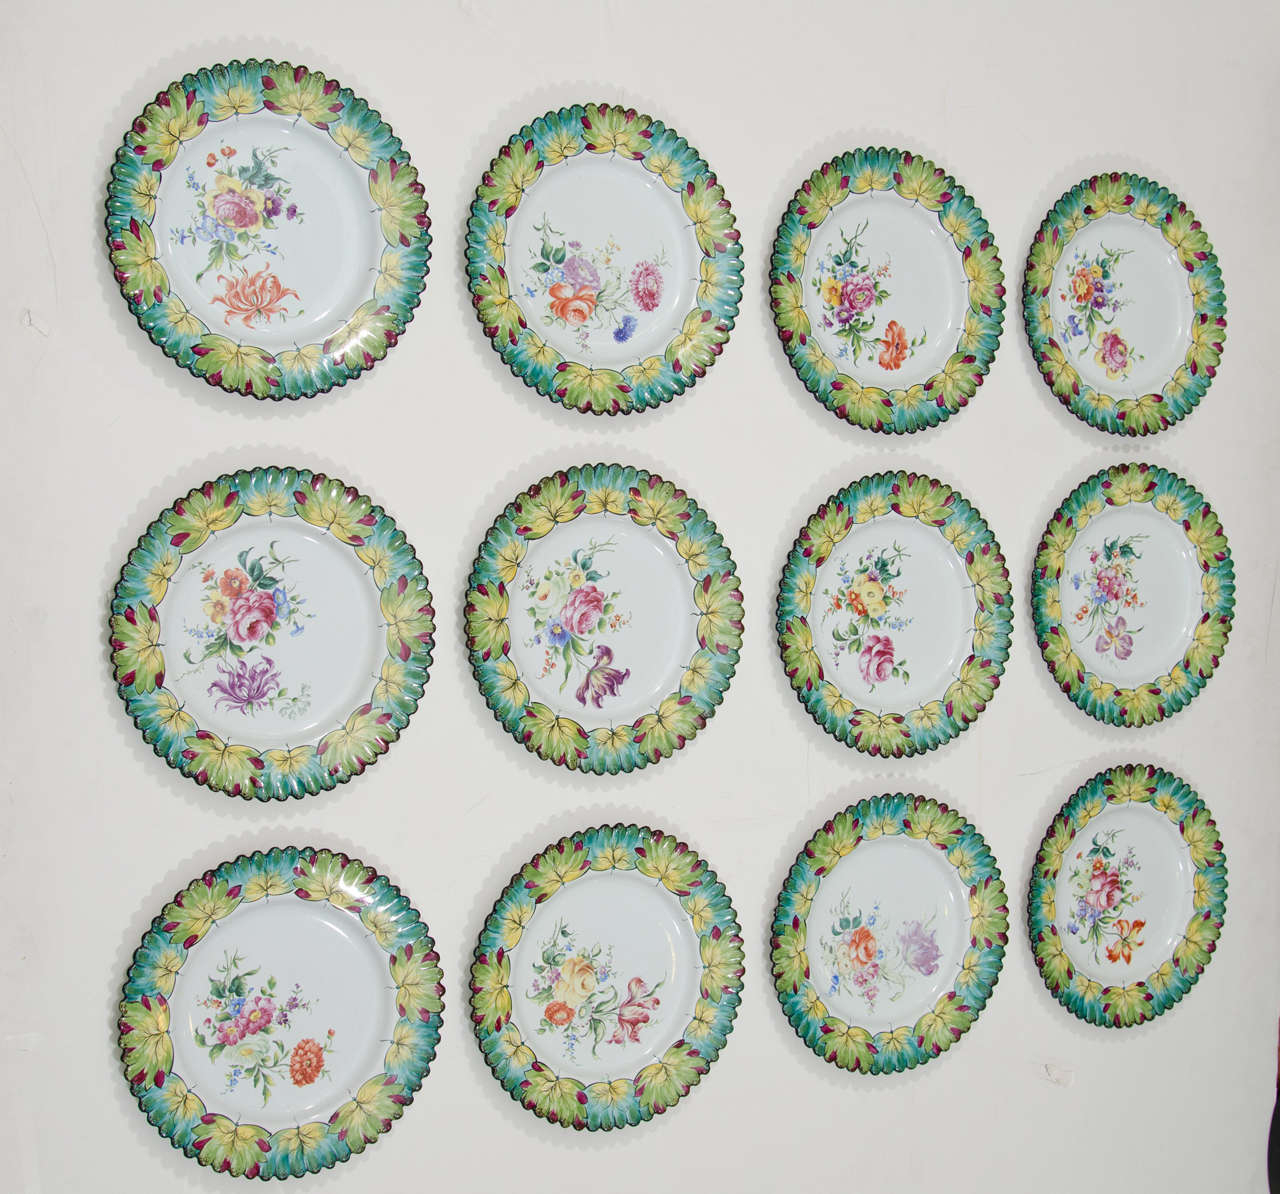 A vintage set of twelve rare hand-painted plates with scalloped edges by Camille Le Tallec for Tiffany & Co. Manufactured in 1964, and painted by an Artisan with initials G.M.  Ten plates are in perfect condition.  One plate has a tiny flea bite